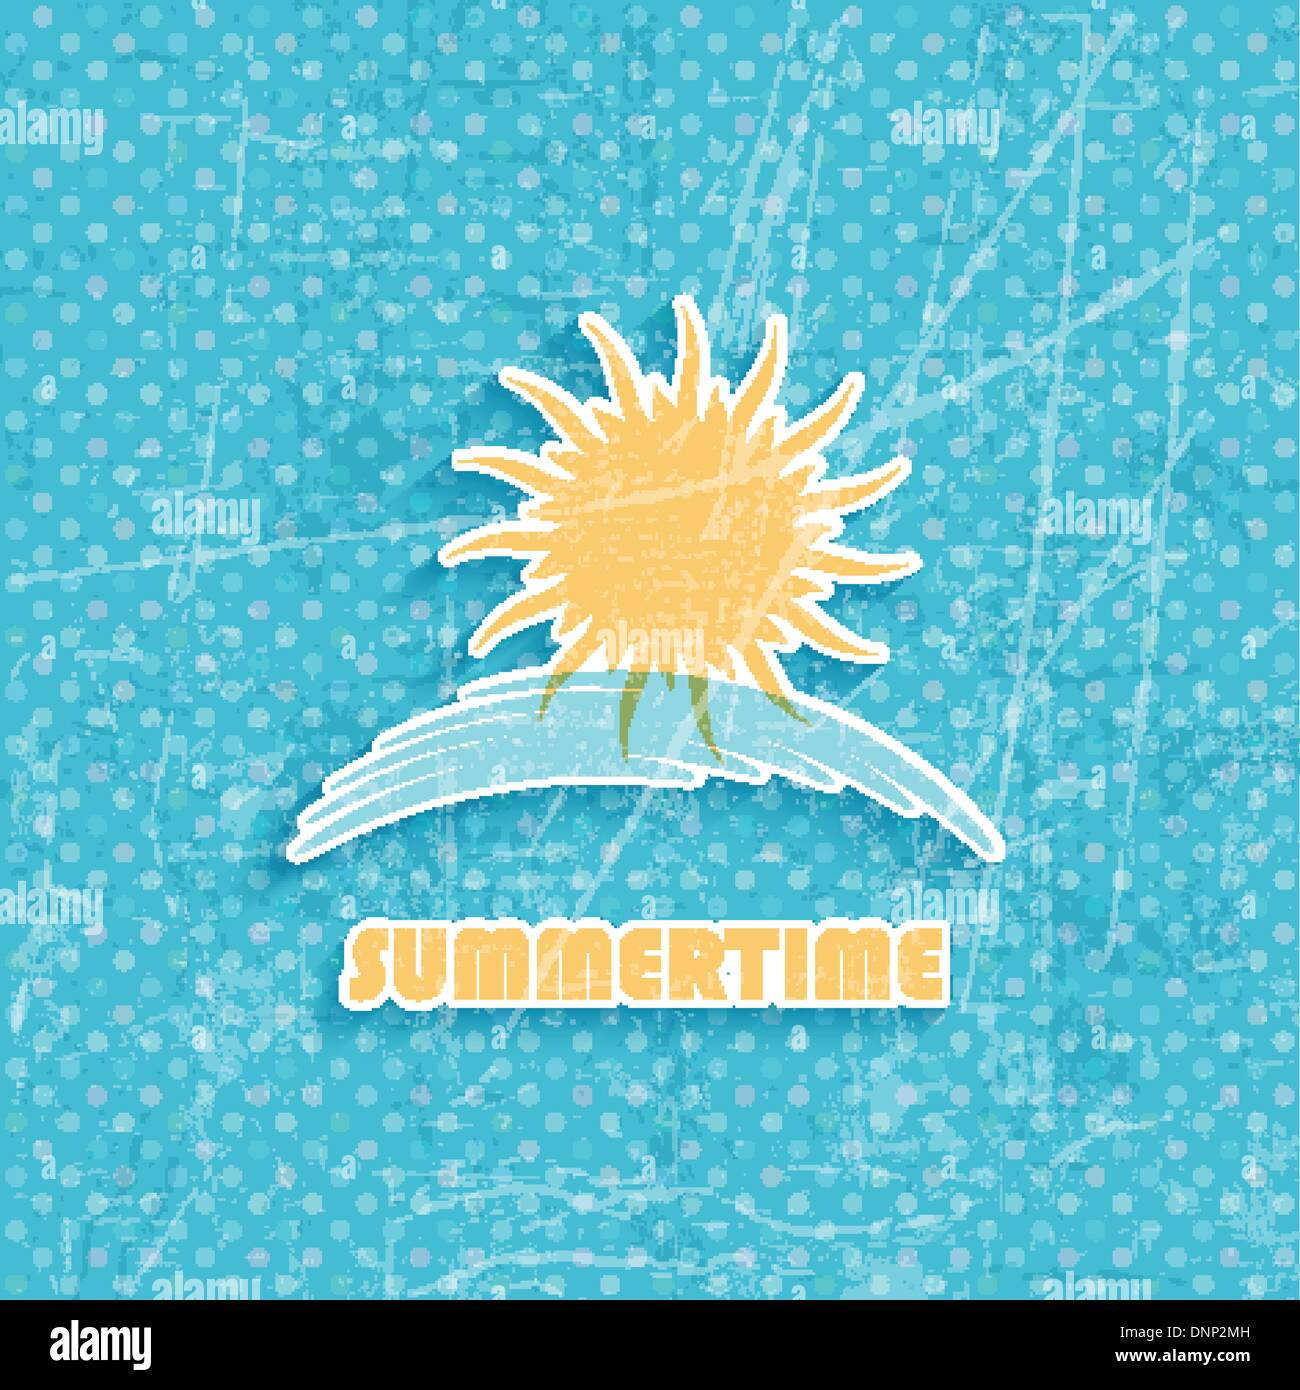 Grunge style summer background with sun icon - Stock Image